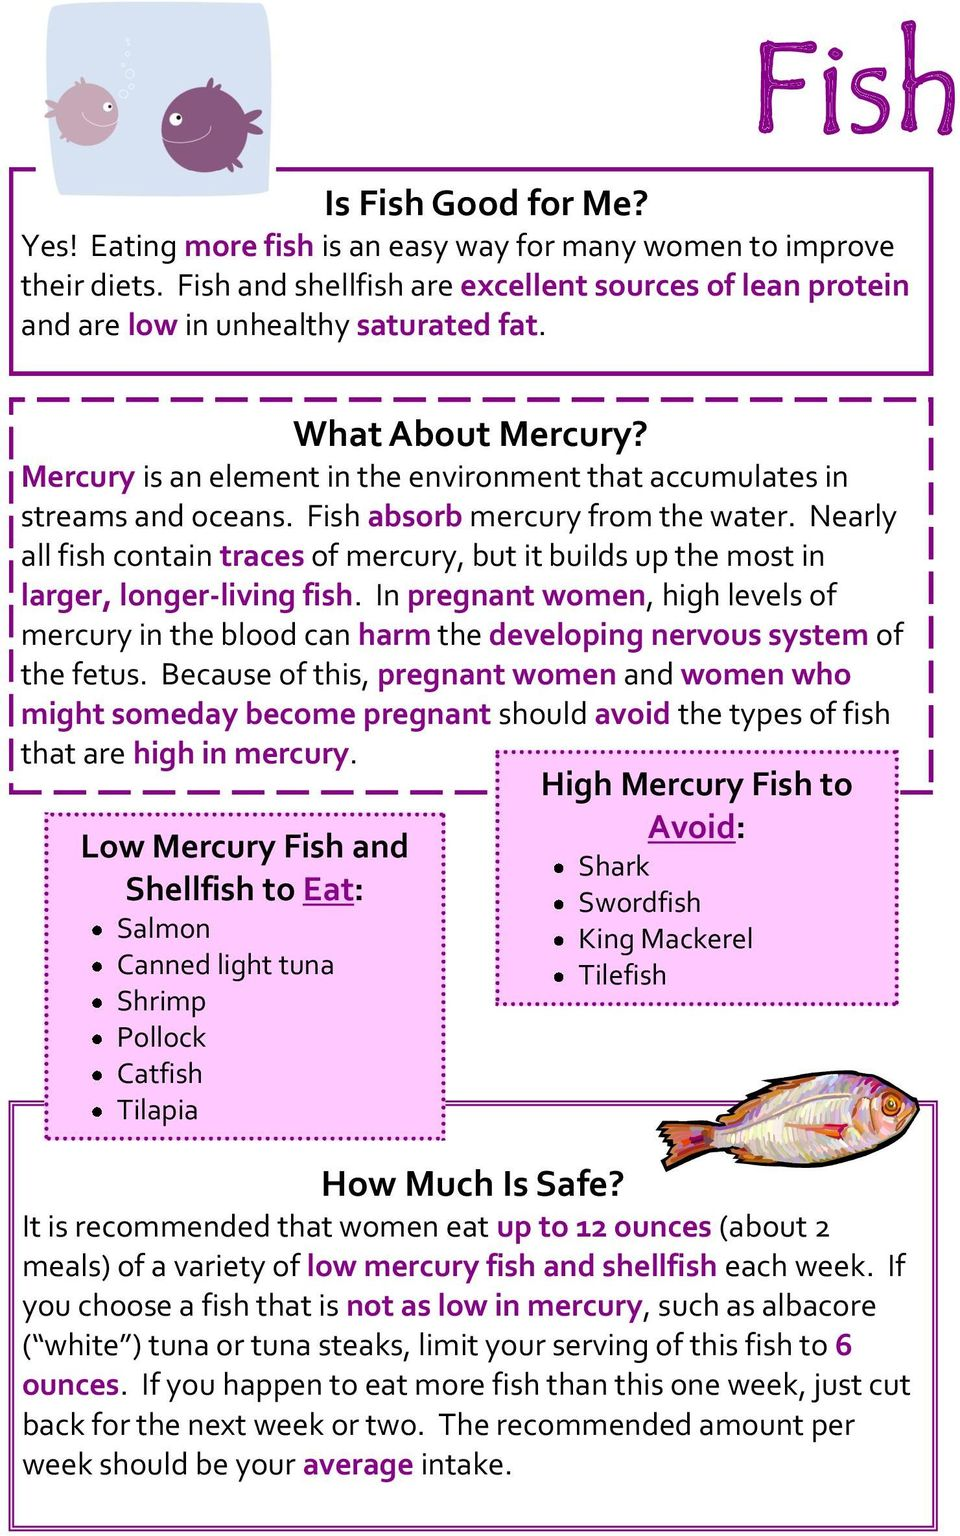 Nearly all fish contain traces of mercury, but it builds up the most in larger, longer-living fish.